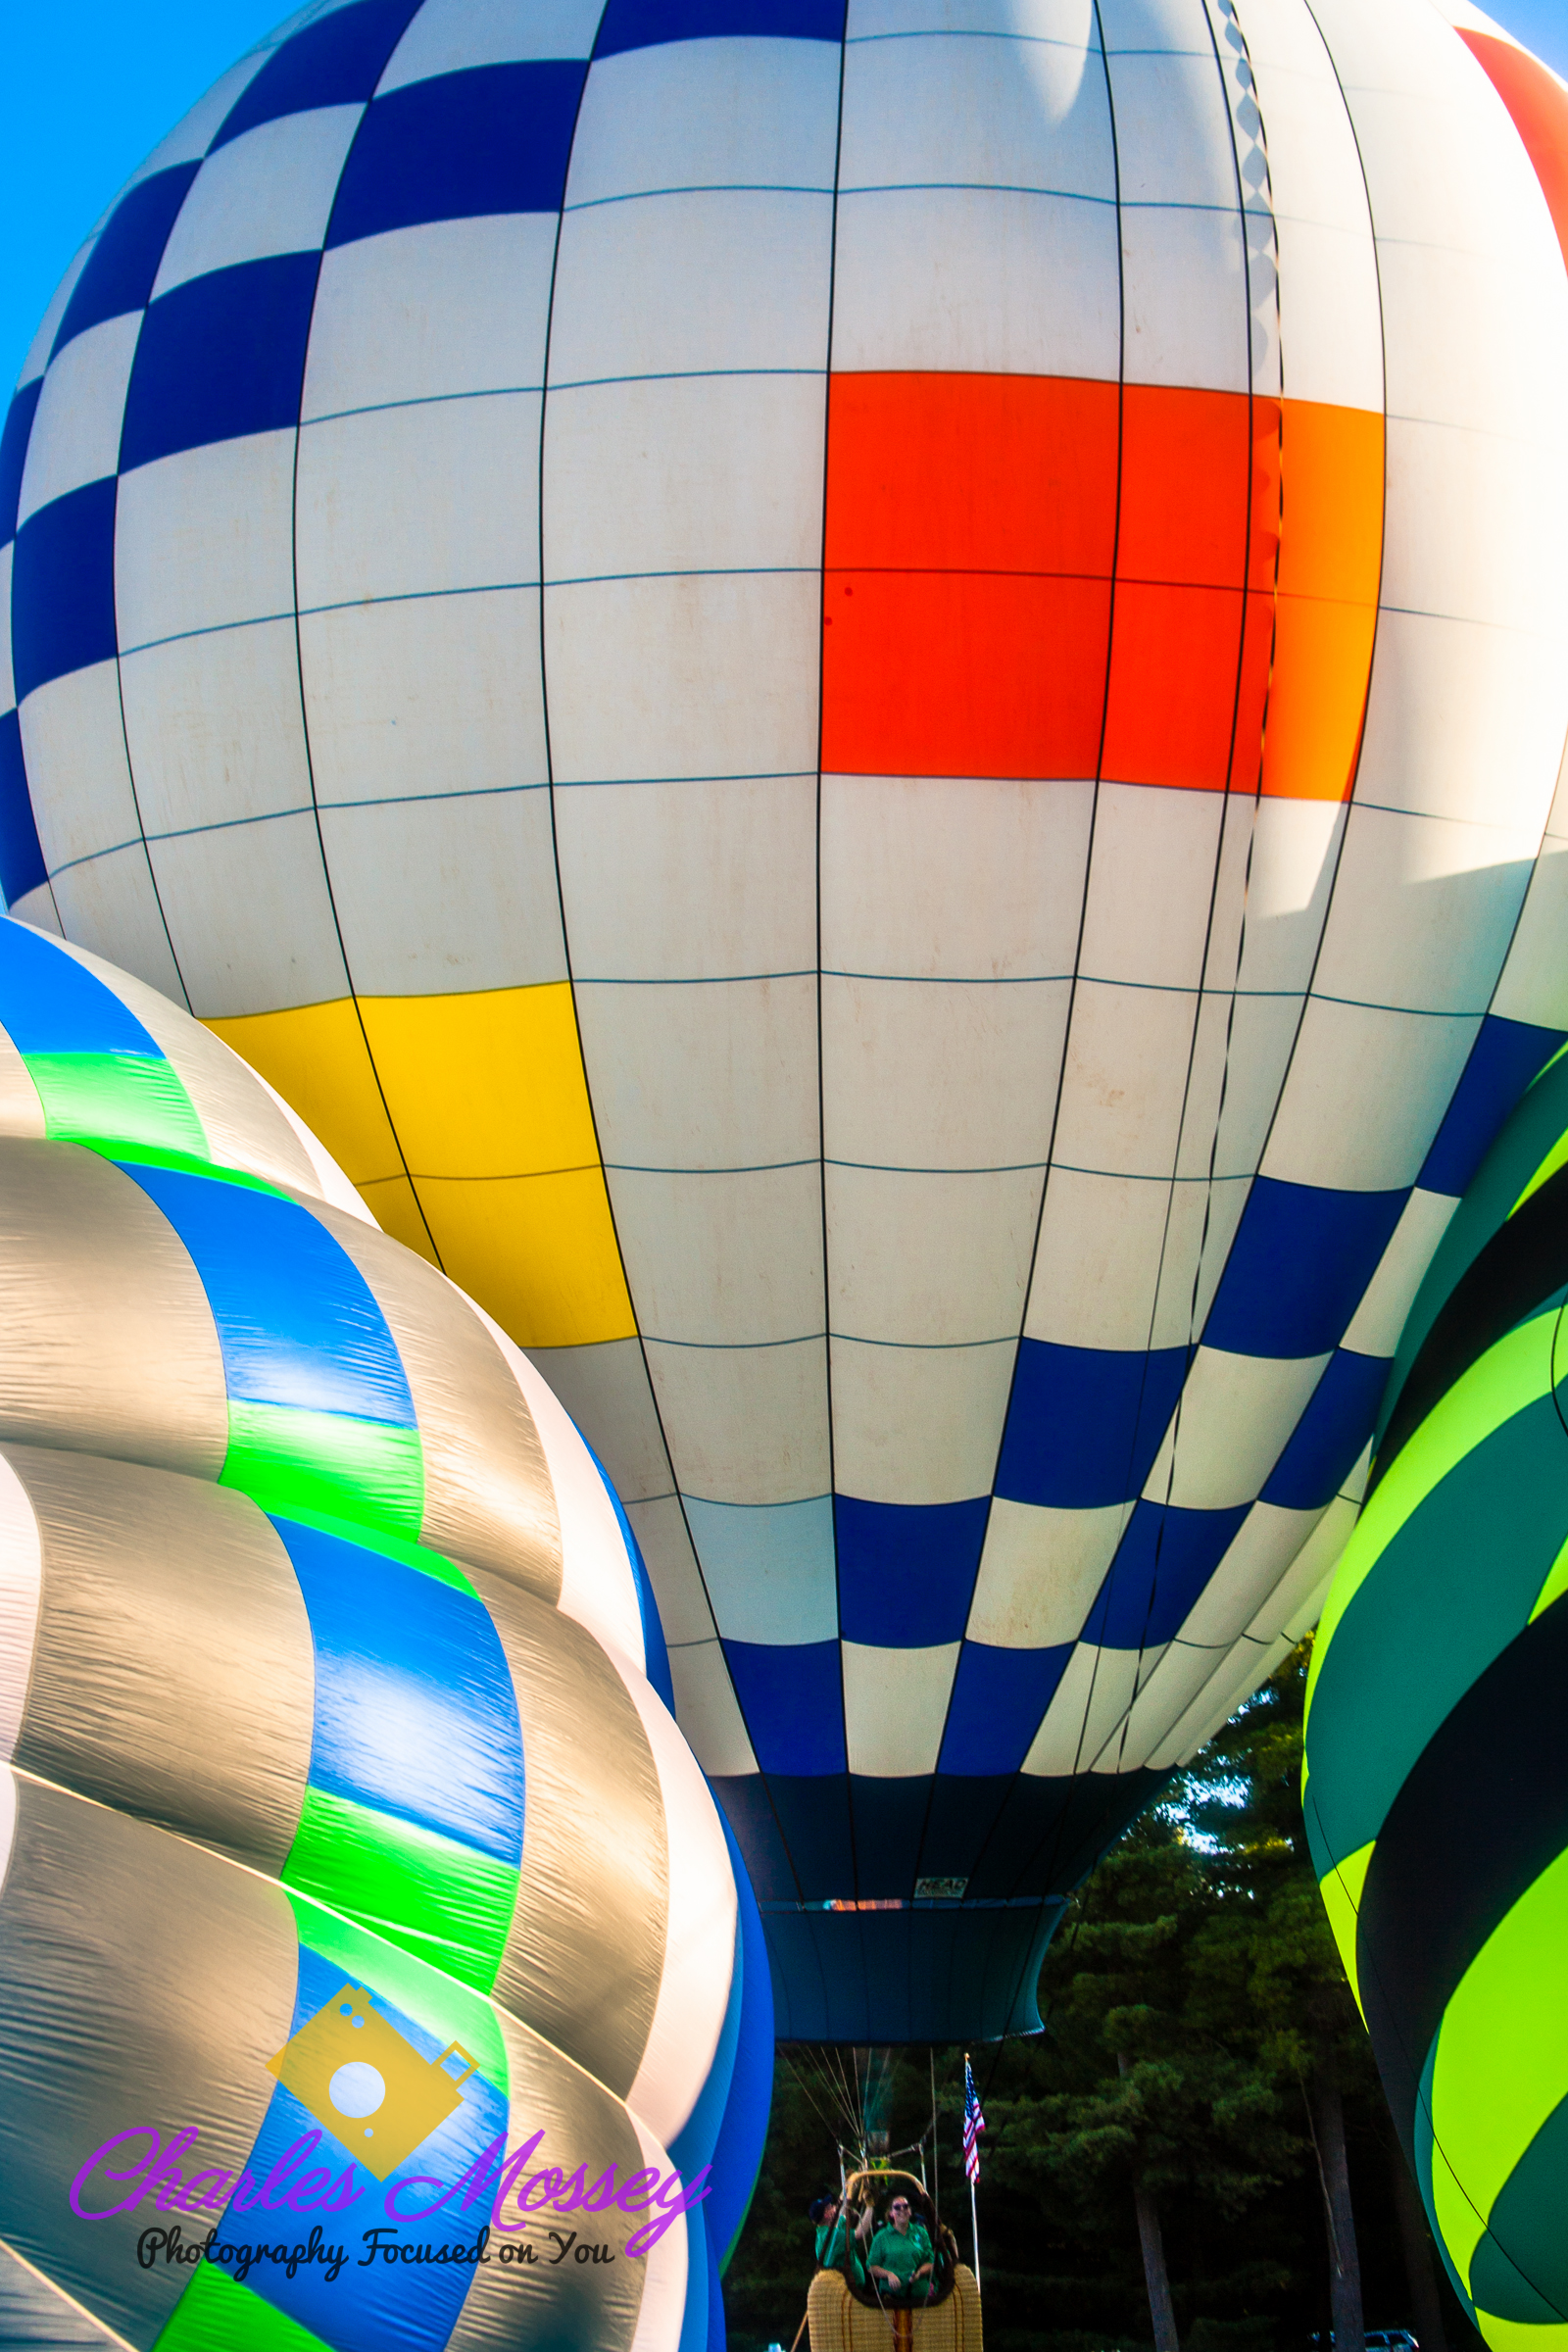 Photos from the 2015 Adirondack Balloon Festival, September 17-20, in Queensbury NY. This years event was simply spectacular, the weather was perfect for most of the launches. This was the first time that circumstances allowed me to attend the Thursday evening launch at Crandall Park in Glens Falls NY. People said that the crowds were bigger then they had ever remembered due to the outstanding weather this evening. Please let me know what is your favorite balloon festival!